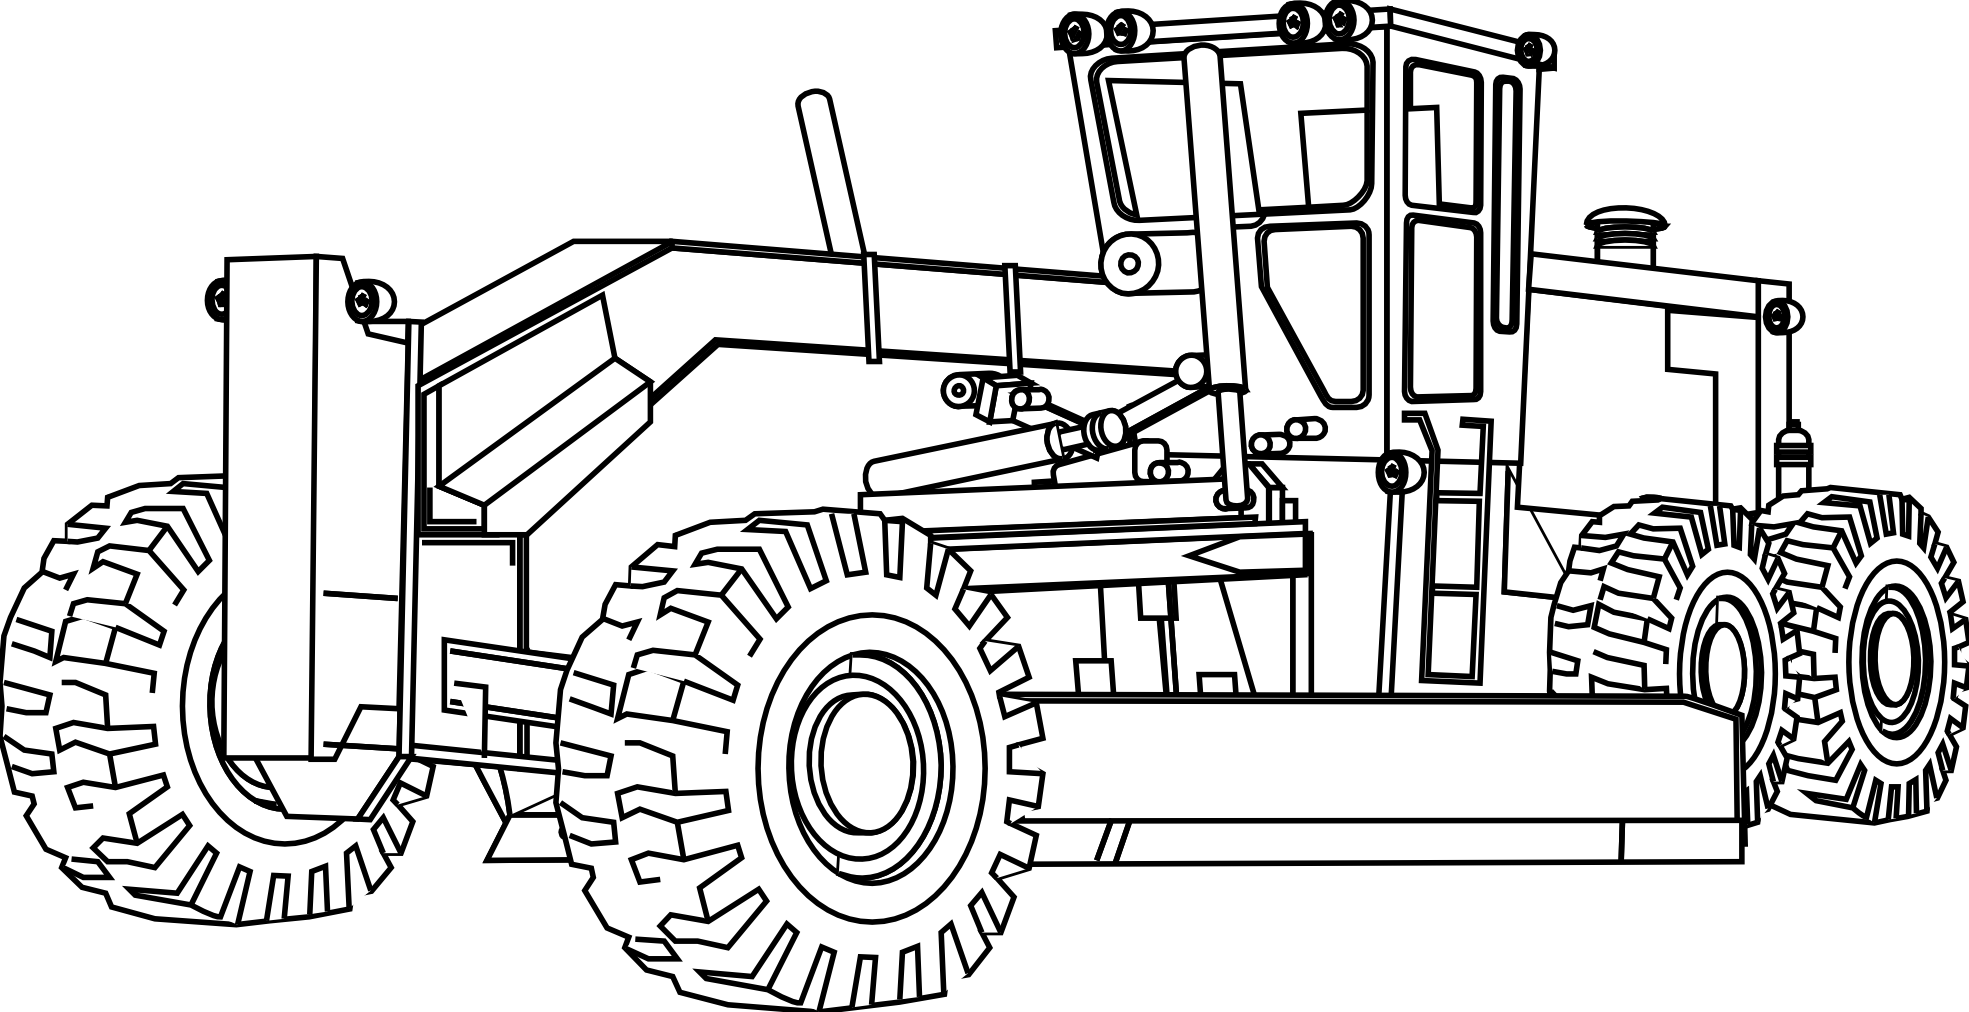 tractor coloring page tractor coloring pages to download and print for free page tractor coloring